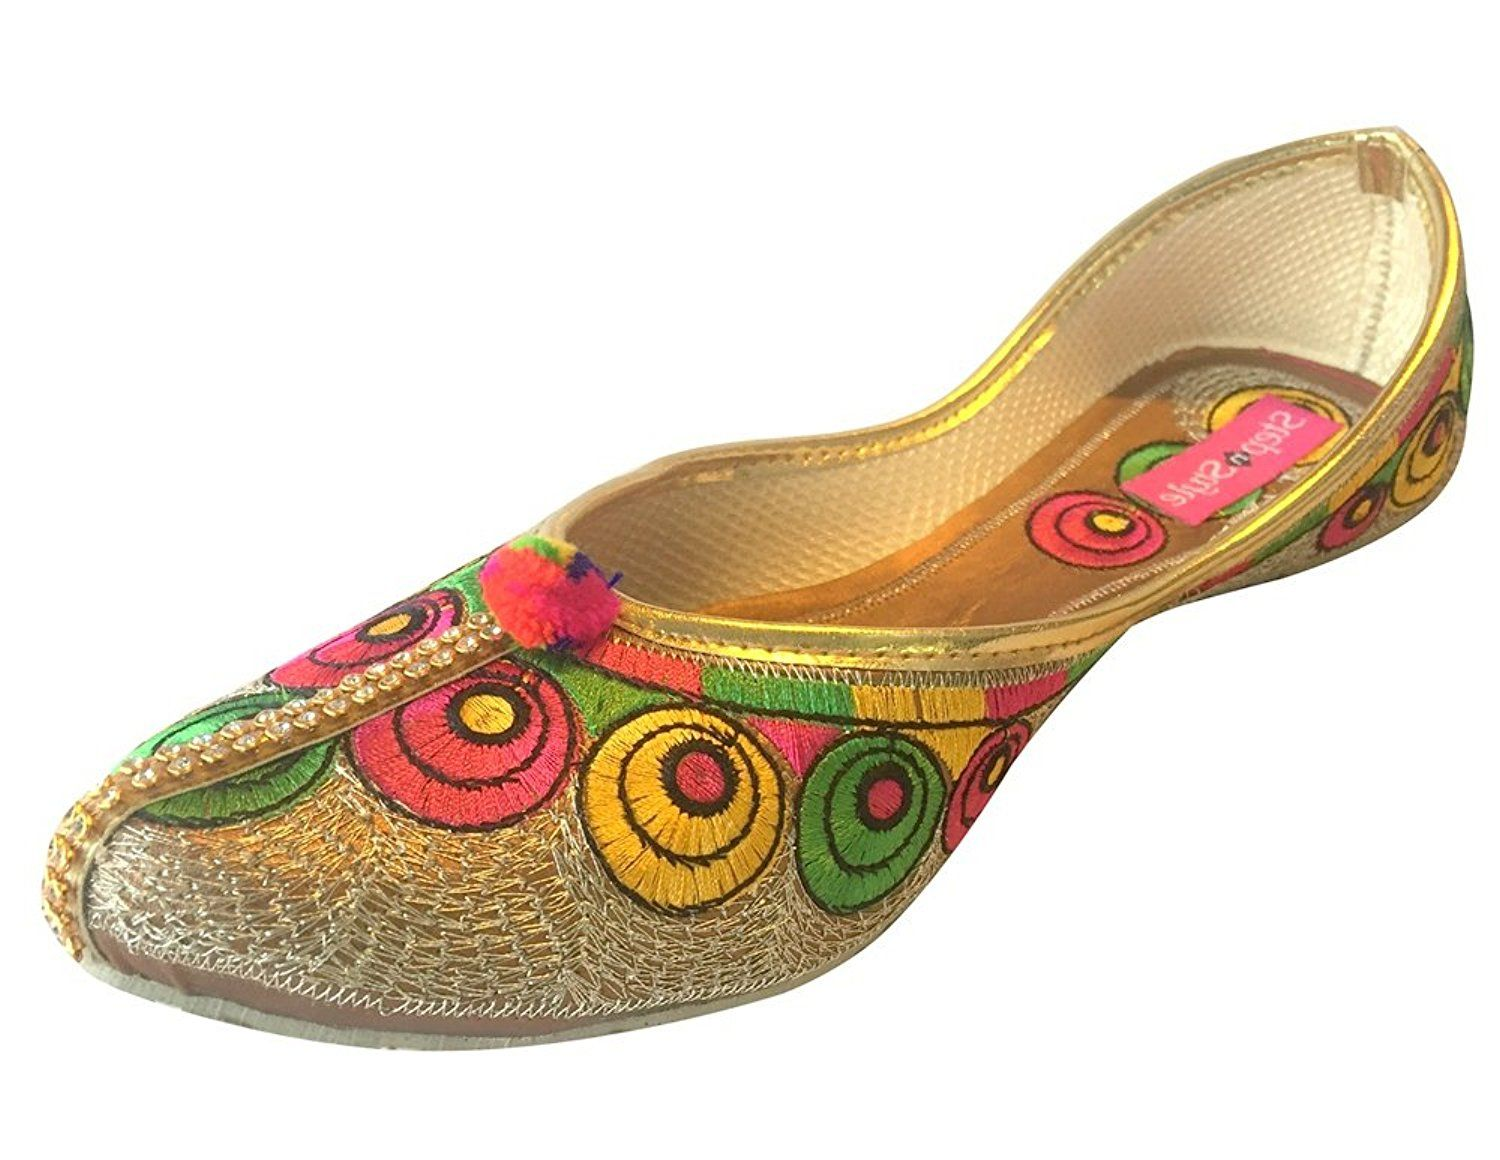 b1f61d9650d1 Step n Style Handmade Leather Shoes Punjabi Jutti Indian Shoes Khussa Shoes  Mojari    See this great product.